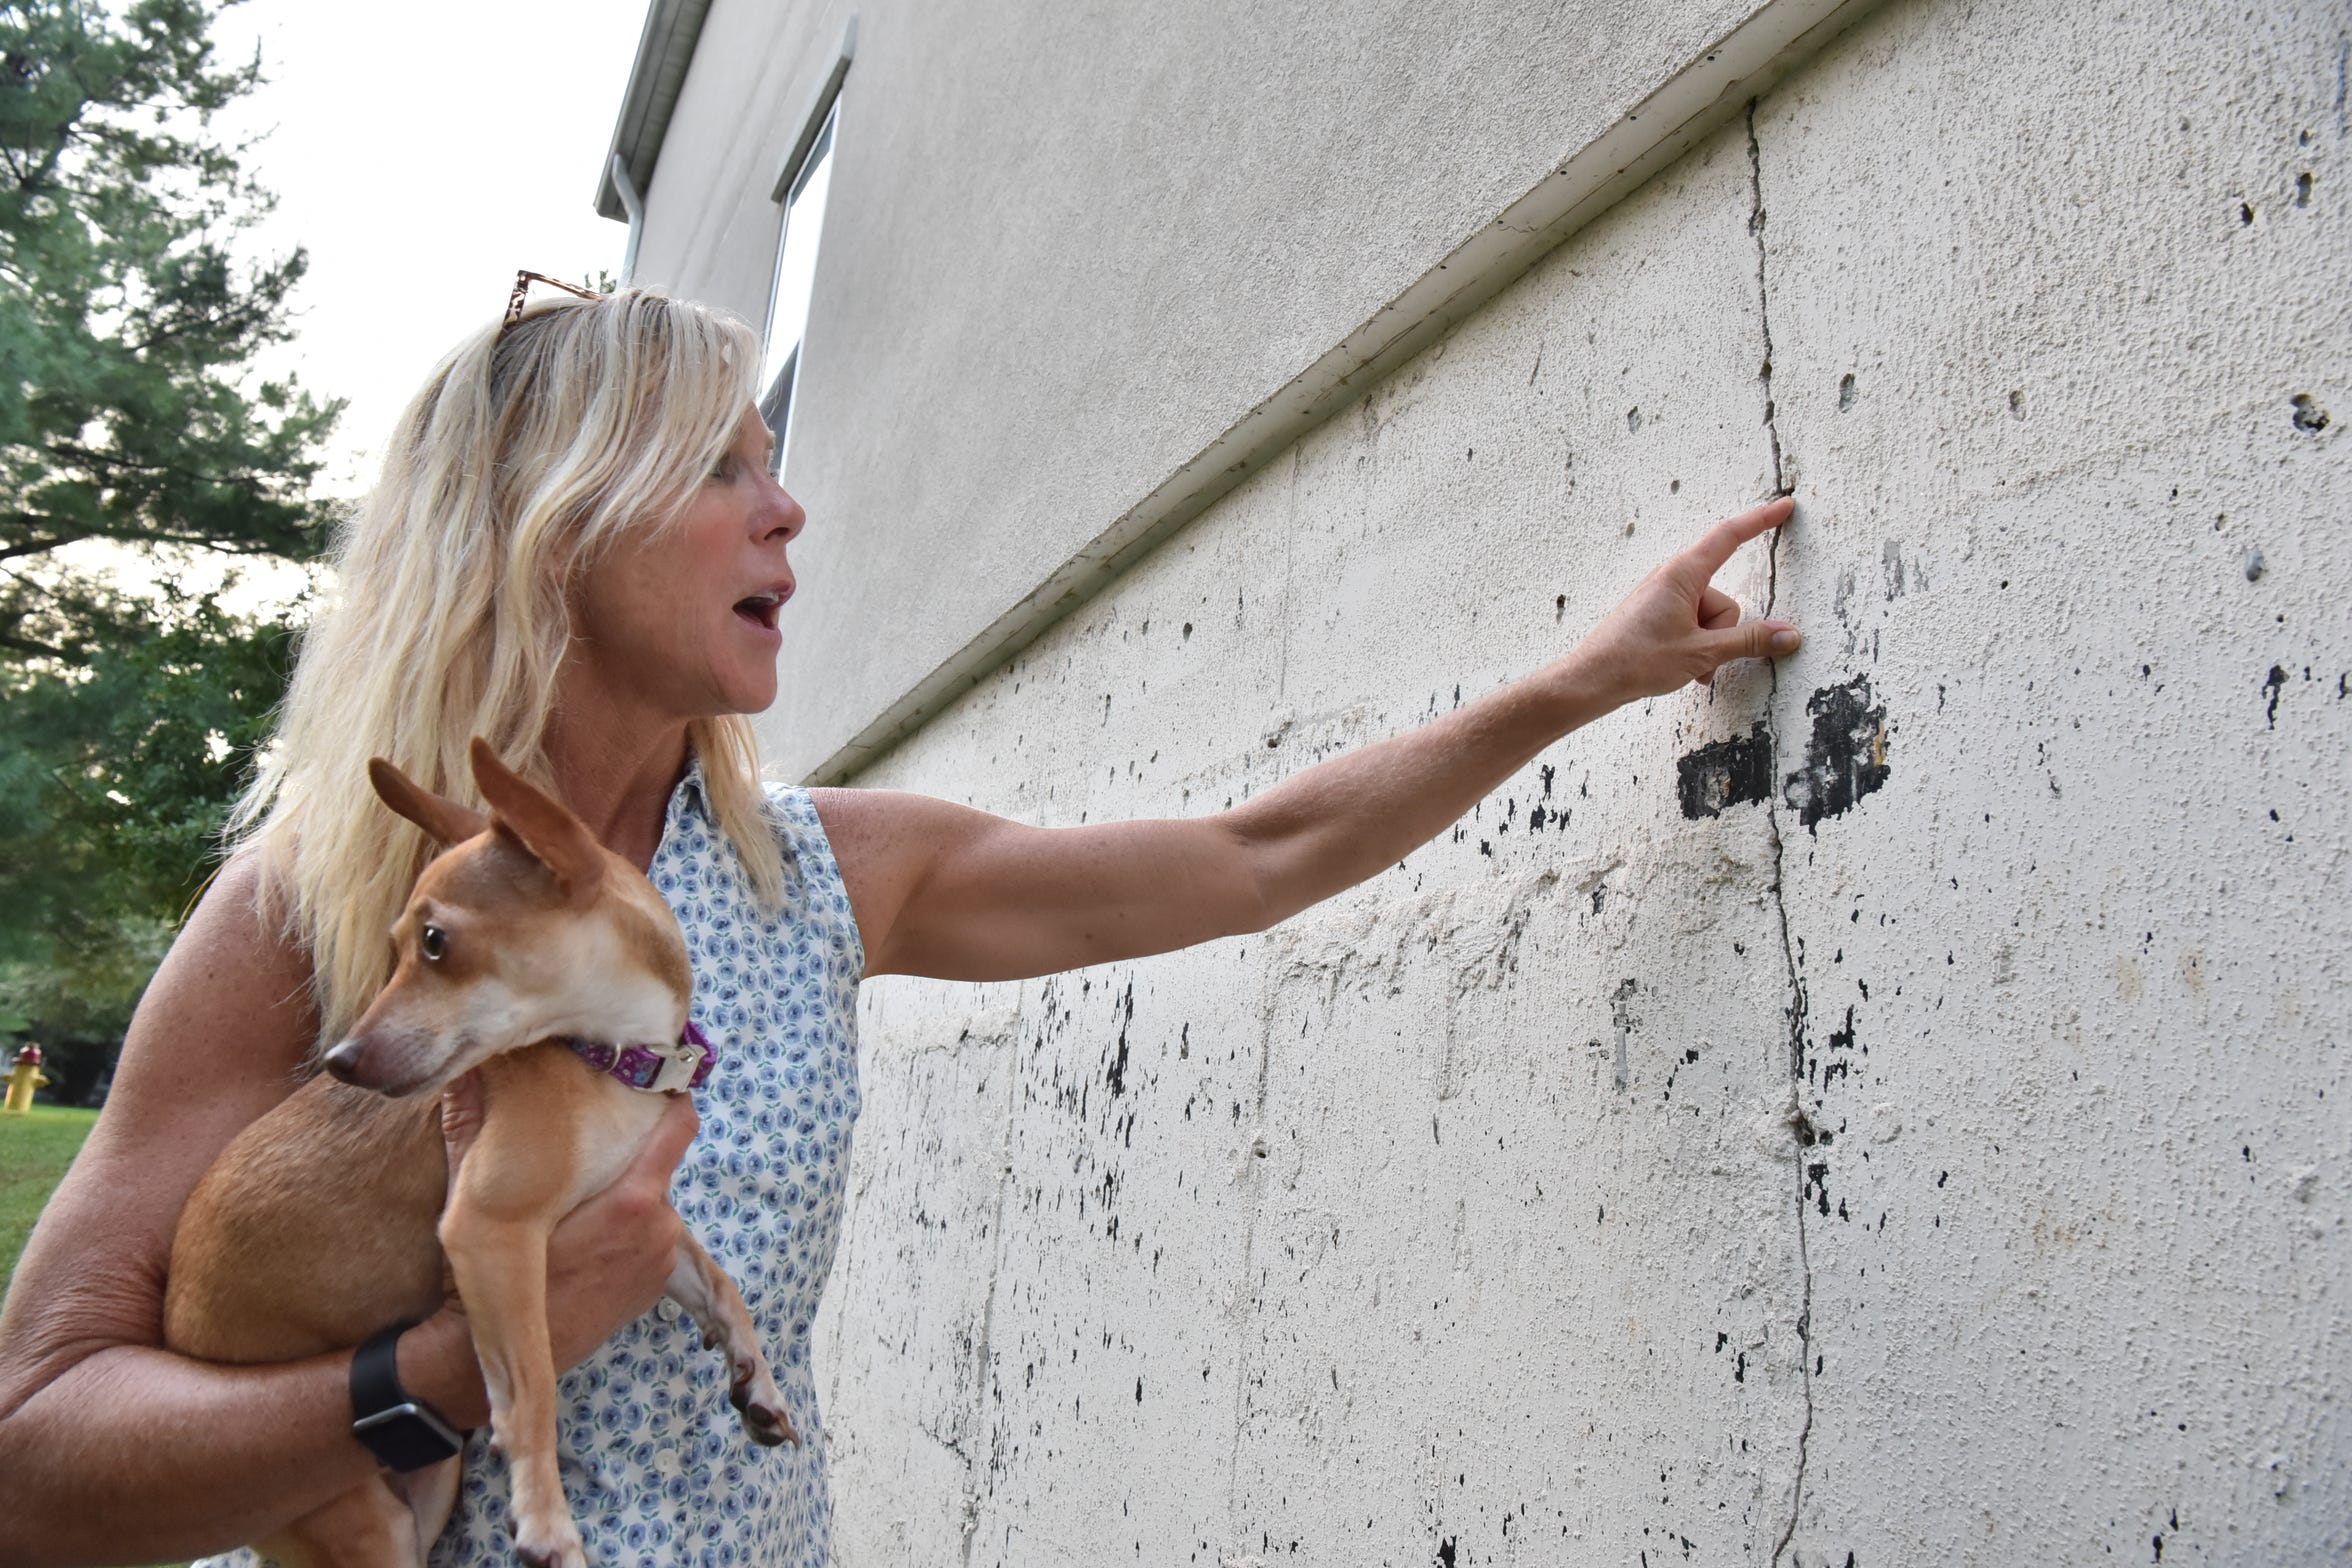 Meaghan Kelly, with Rosa, a foster dog, points to a crack in the foundation of her town home at Brittany Chase in Wayne on Sept. 19. Her unit has been identified by the condo association as the center of an issue that could cost her neighbors a total of $3 million, or more, to repair.